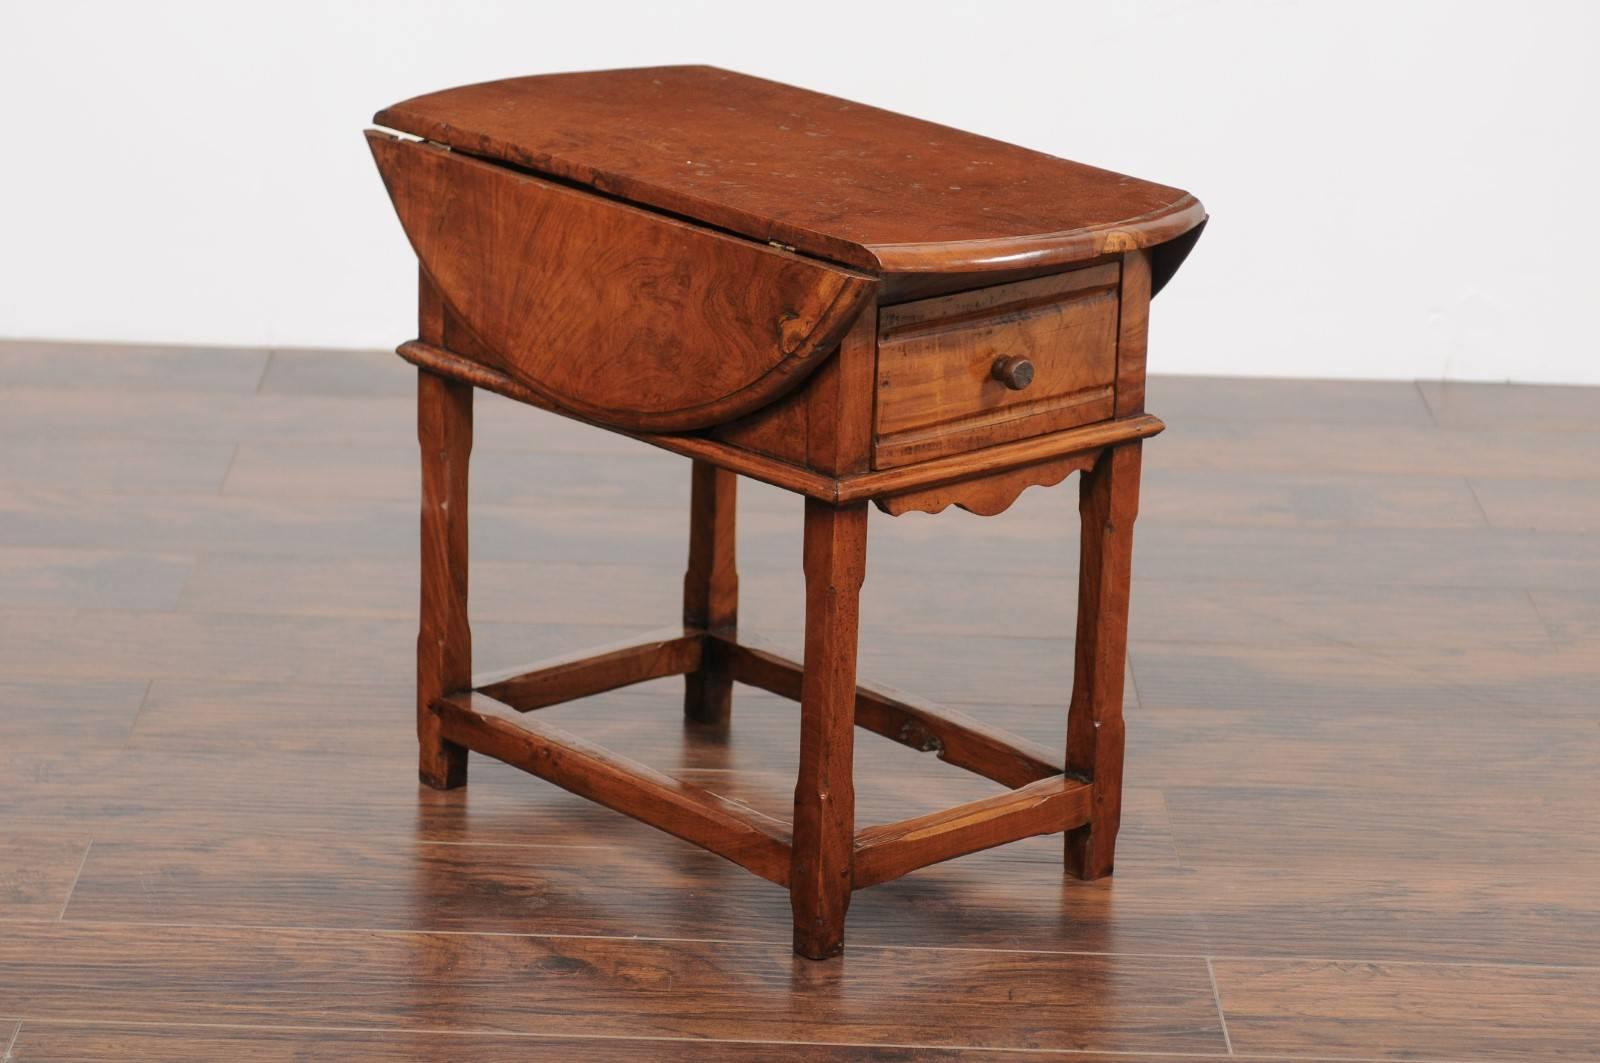 An English Yew Wood Drop Leaf Side Table From The Second Half Of The 19th